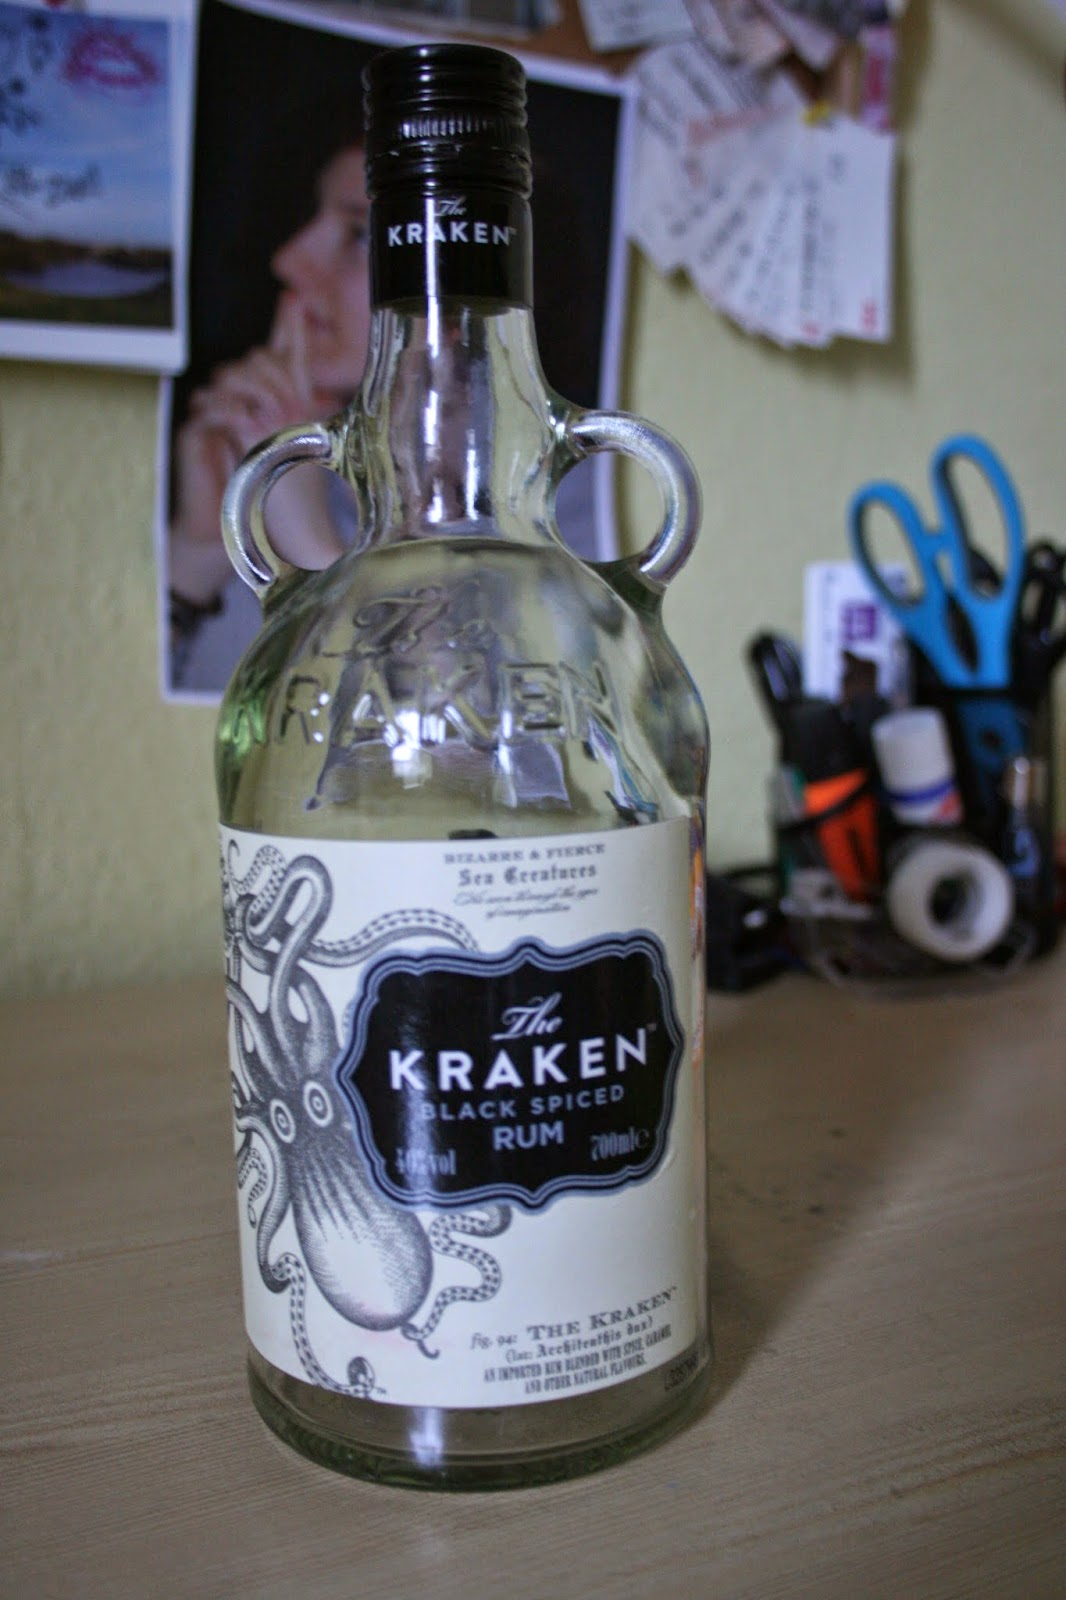 kraken rum bottle